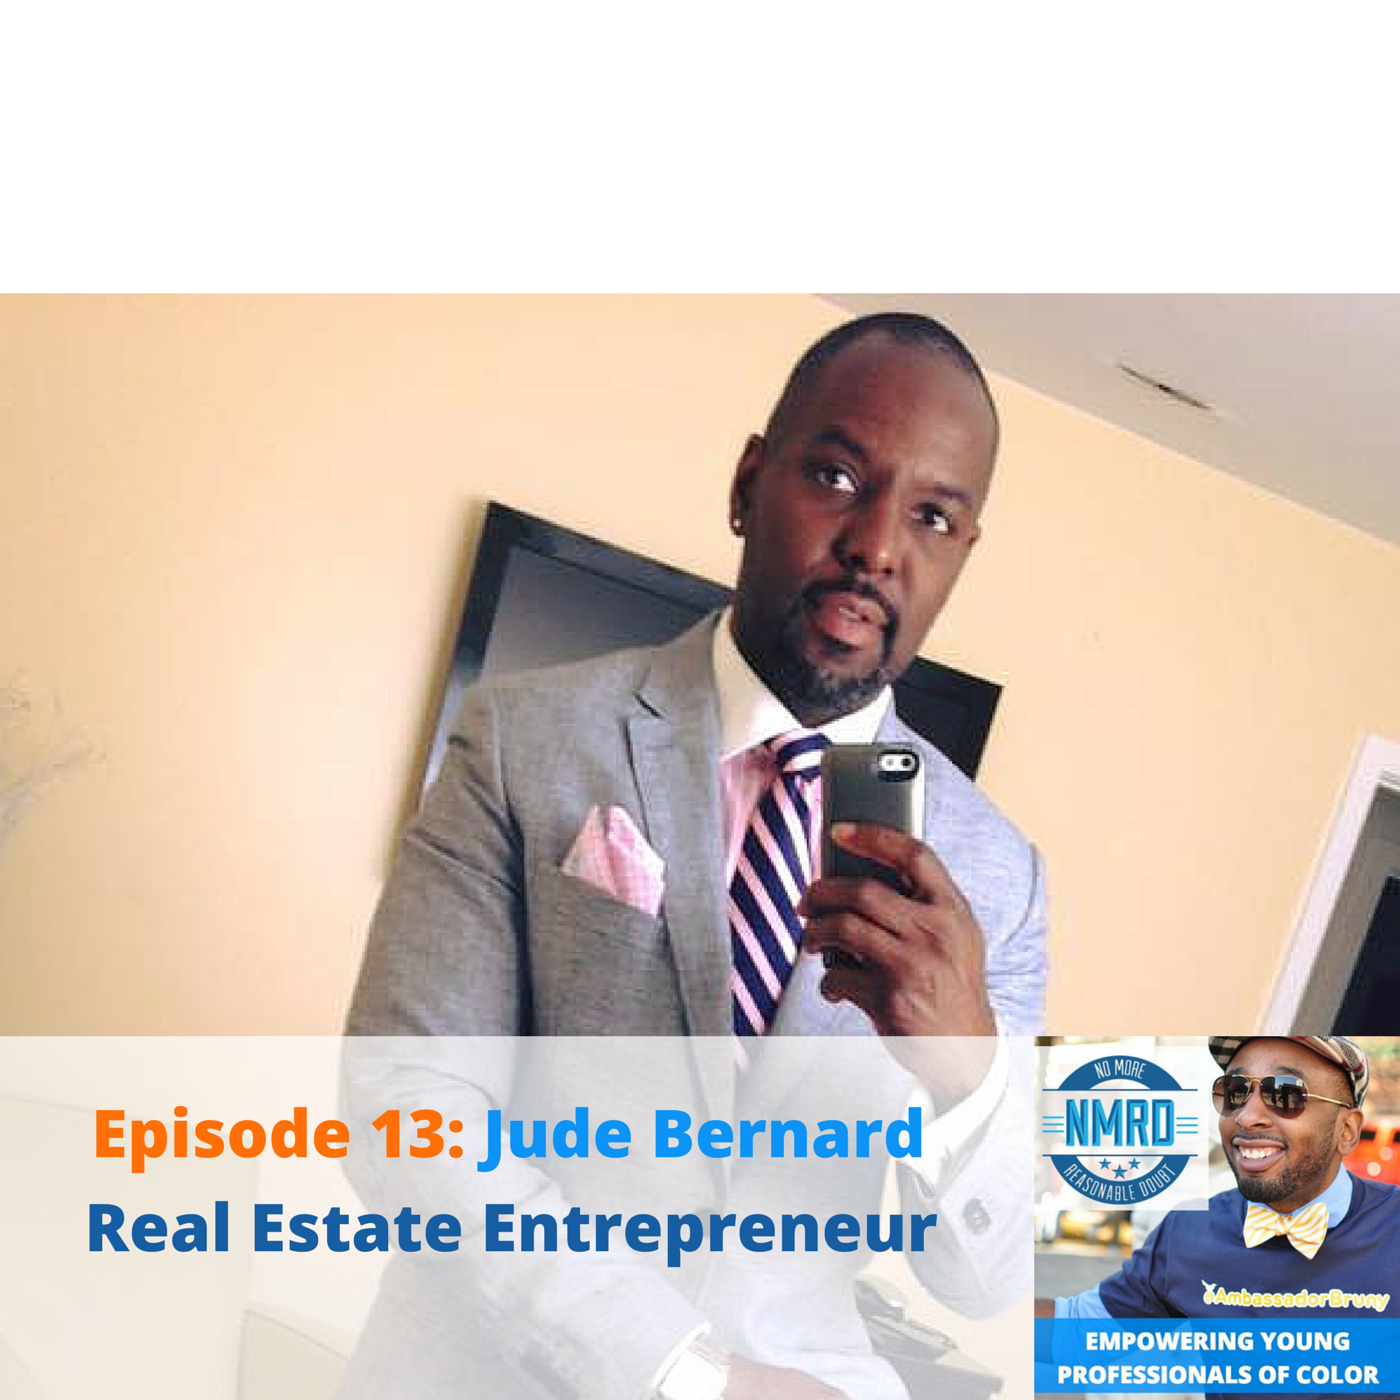 E13 – Real Estate Entrepreneur, Jude Bernard